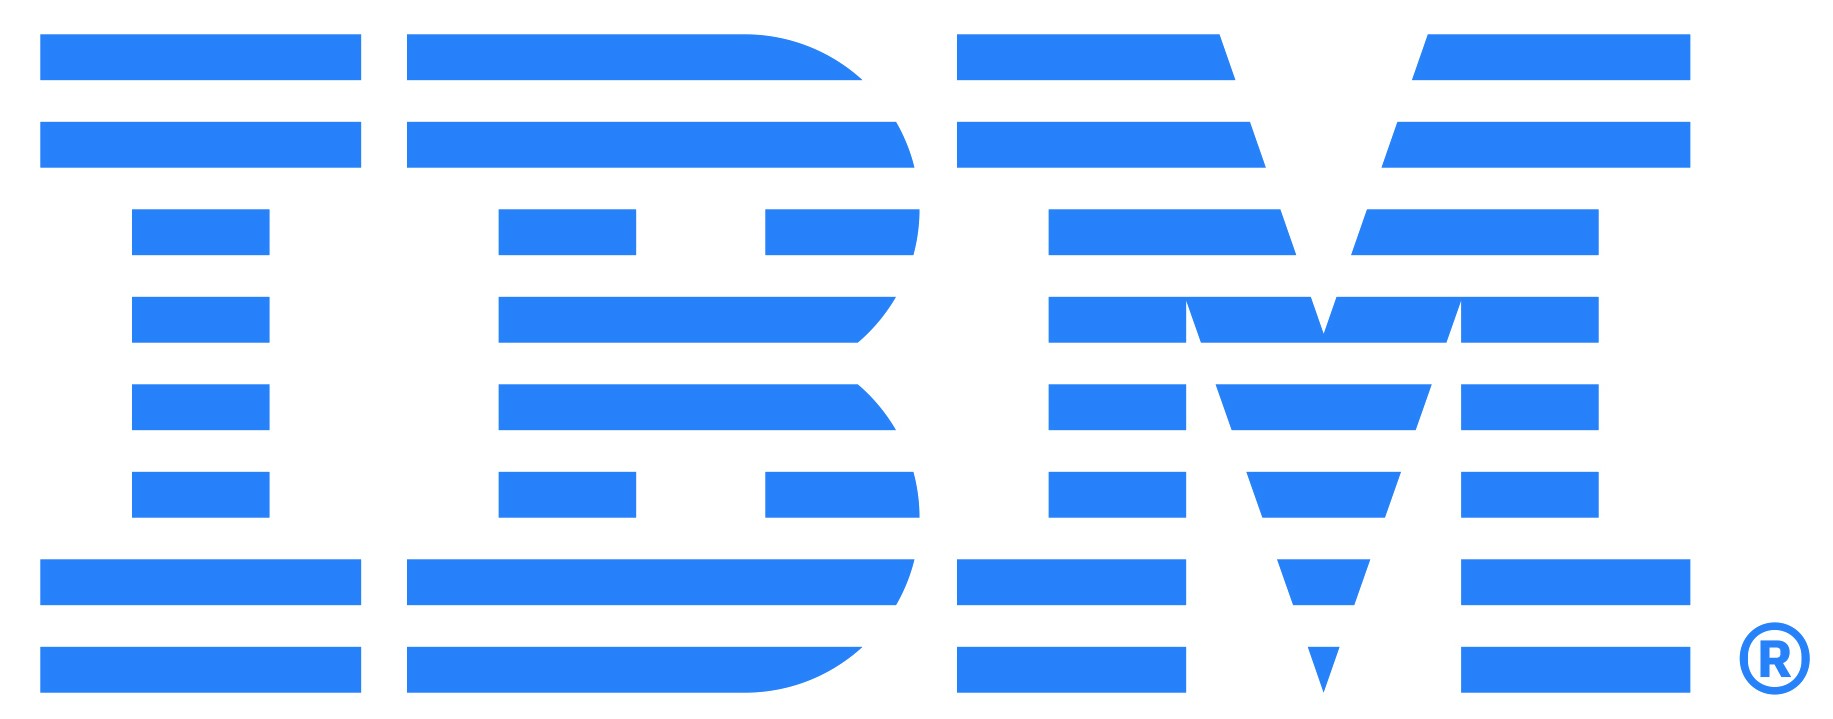 IBM_logo_blue60_CMYK-2